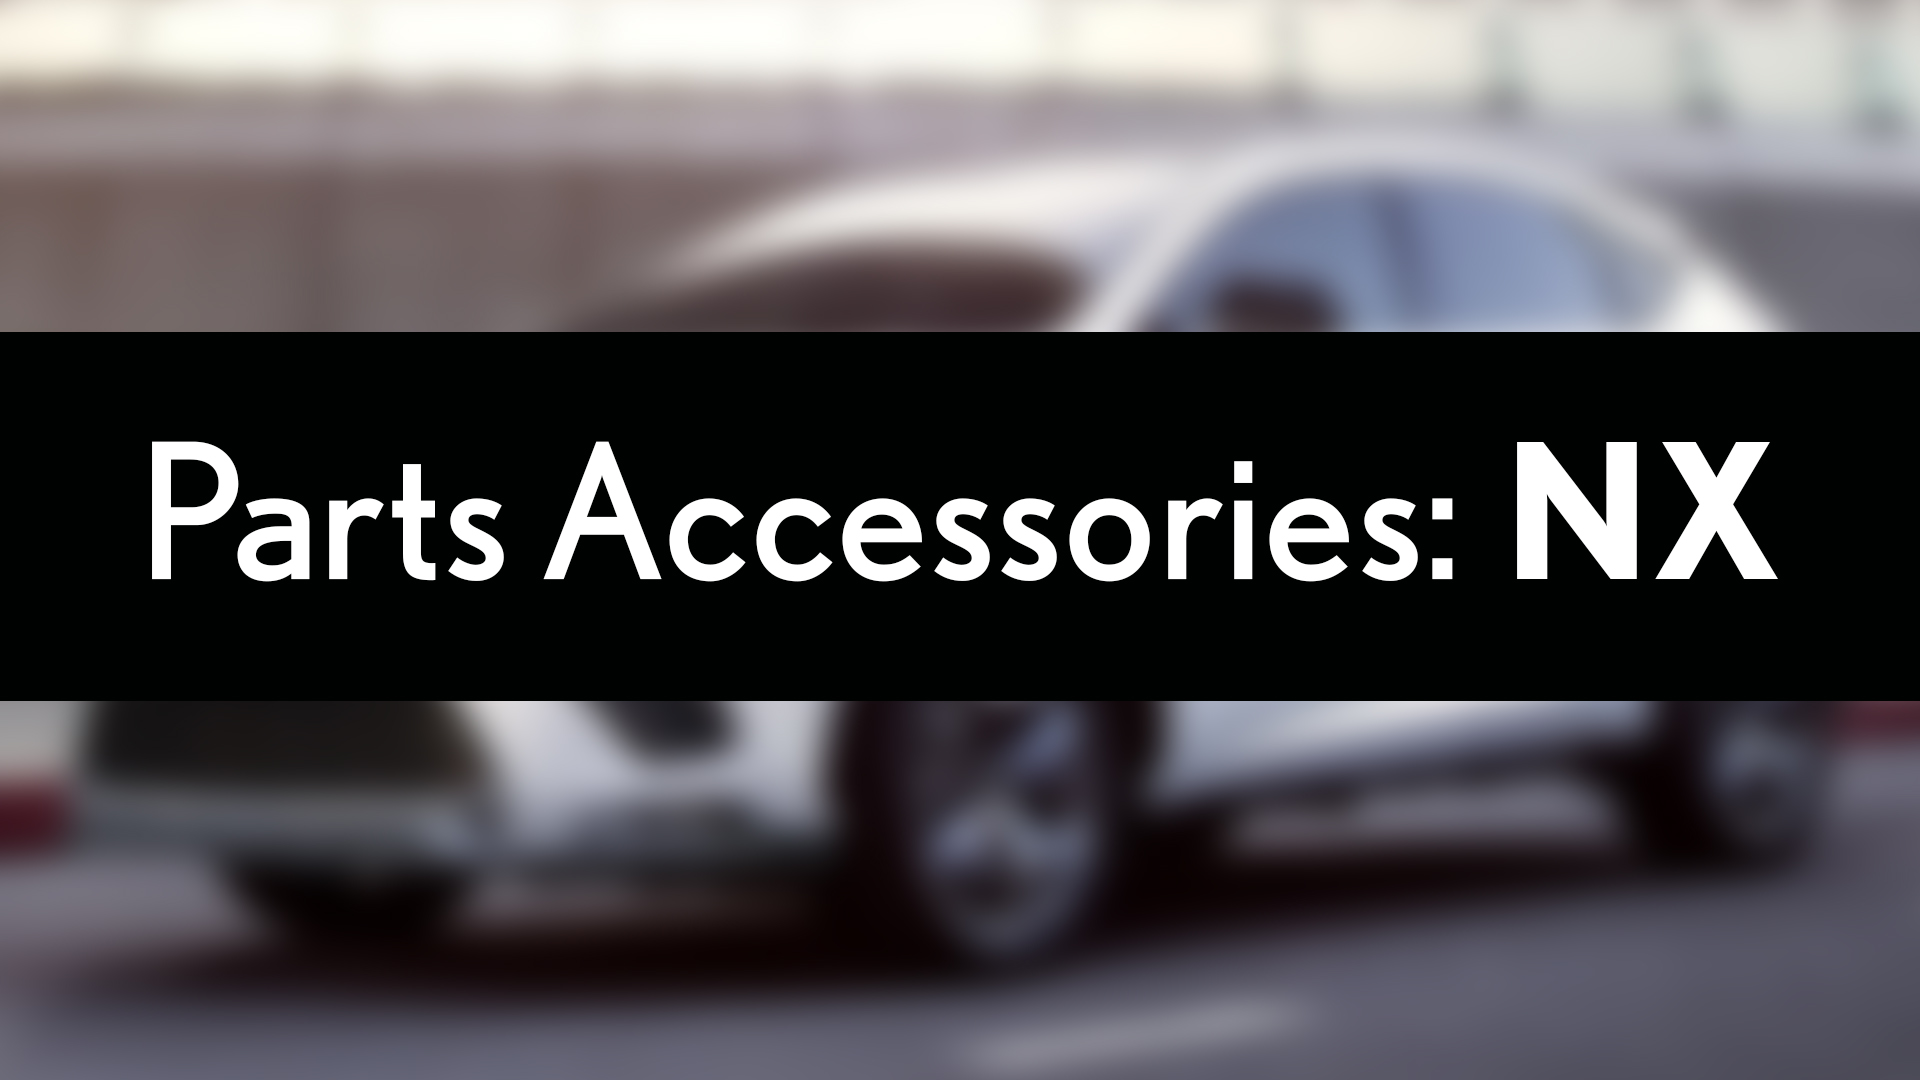 Lexus NX Parts Accessories